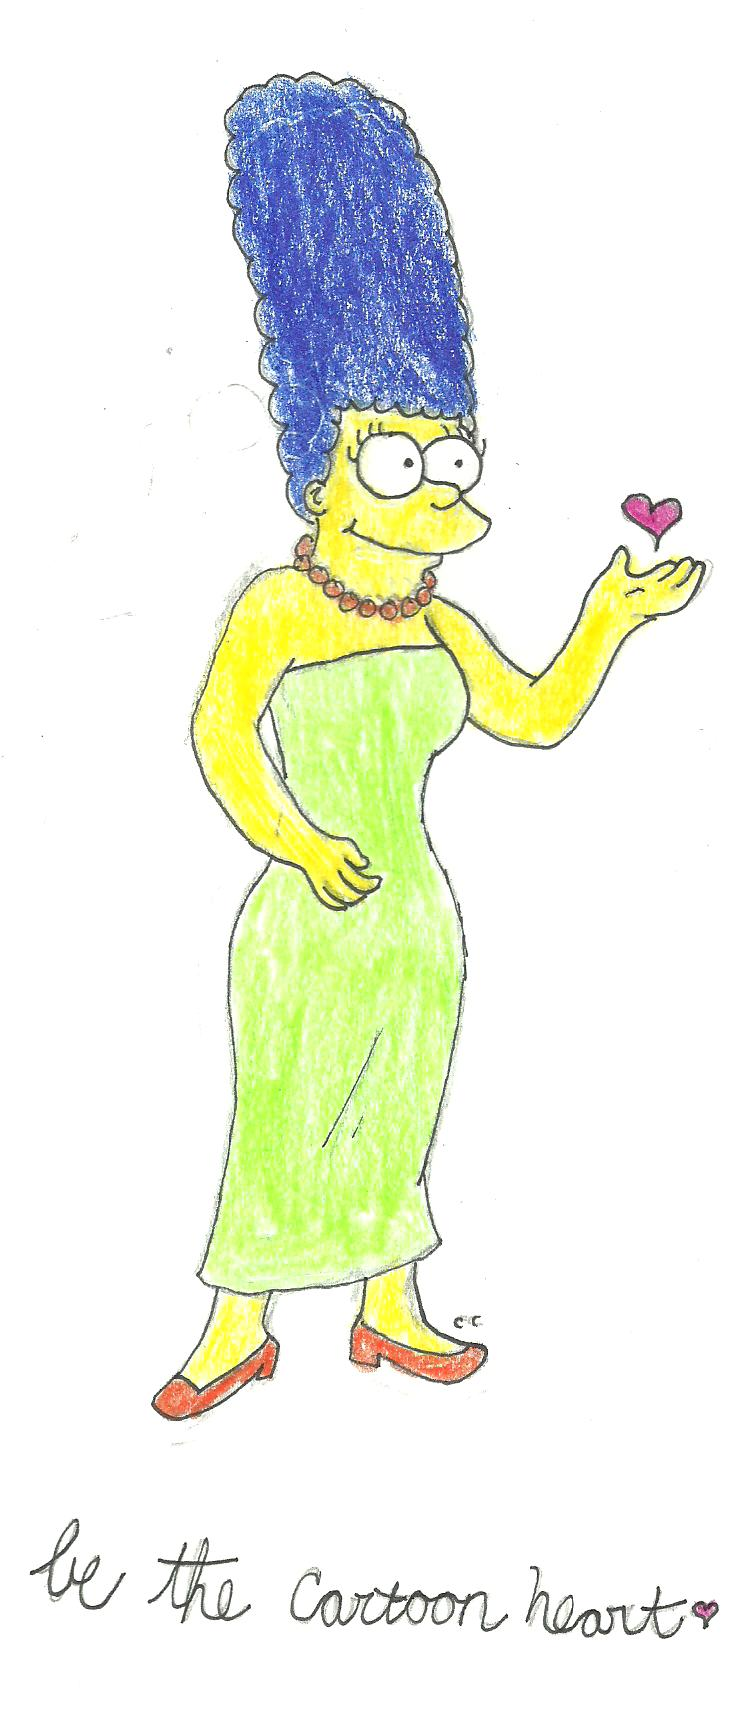 Marge Has a Cartoon Heart by TheSimpsonsFanGirl